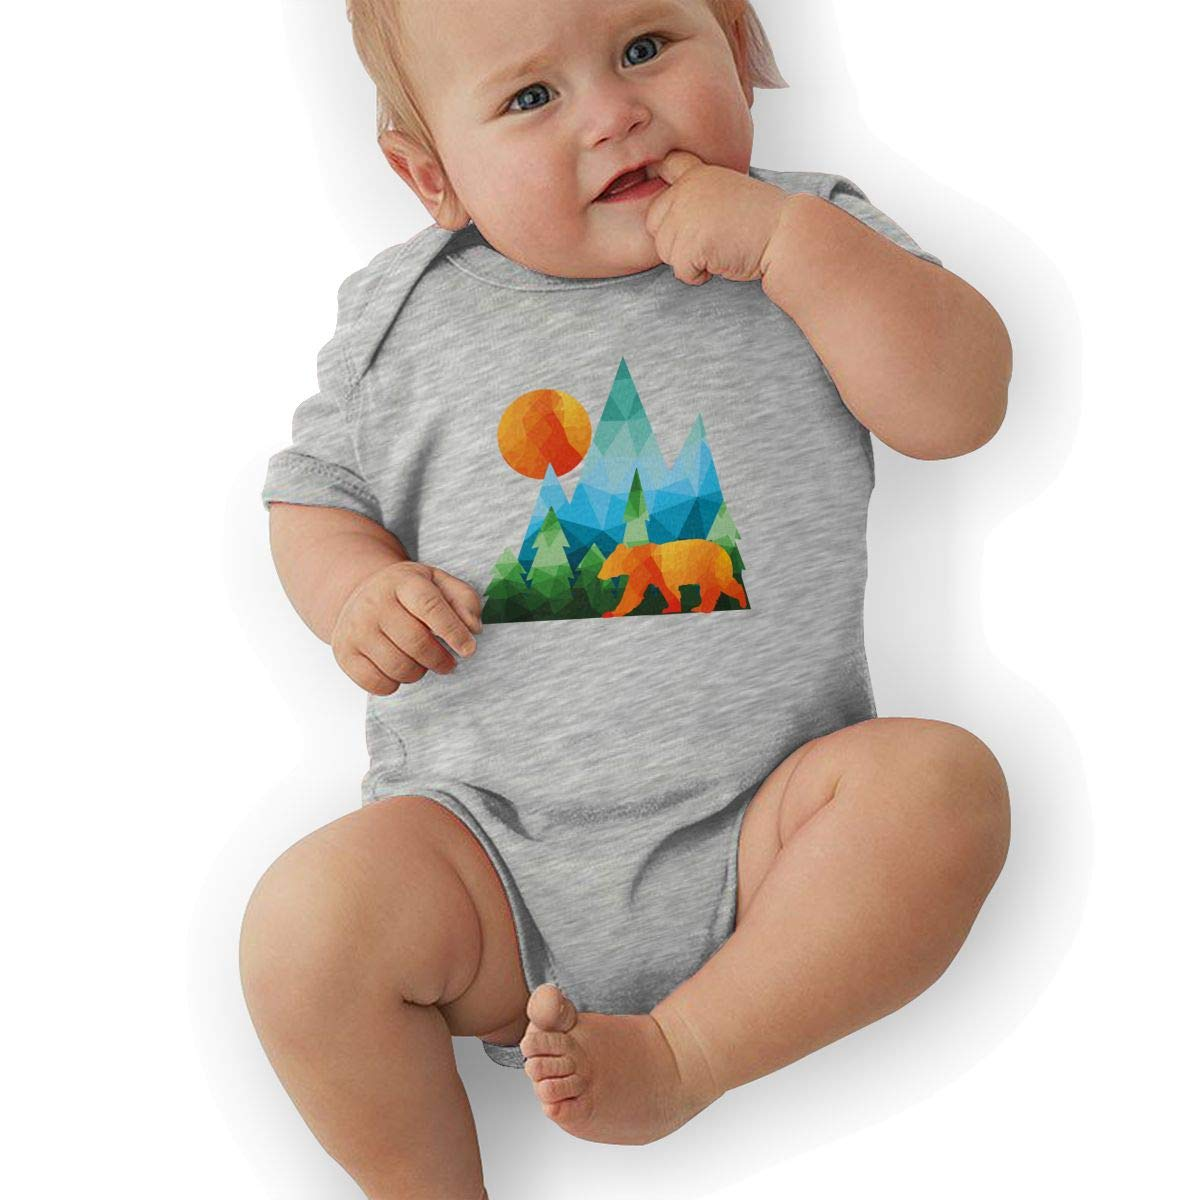 BONLOR Colorful Cali Bear Baby Boys Girls Jumpsuits Short Sleeve Romper Bodysuit Bodysuit Jumpsuit Outfits Gray